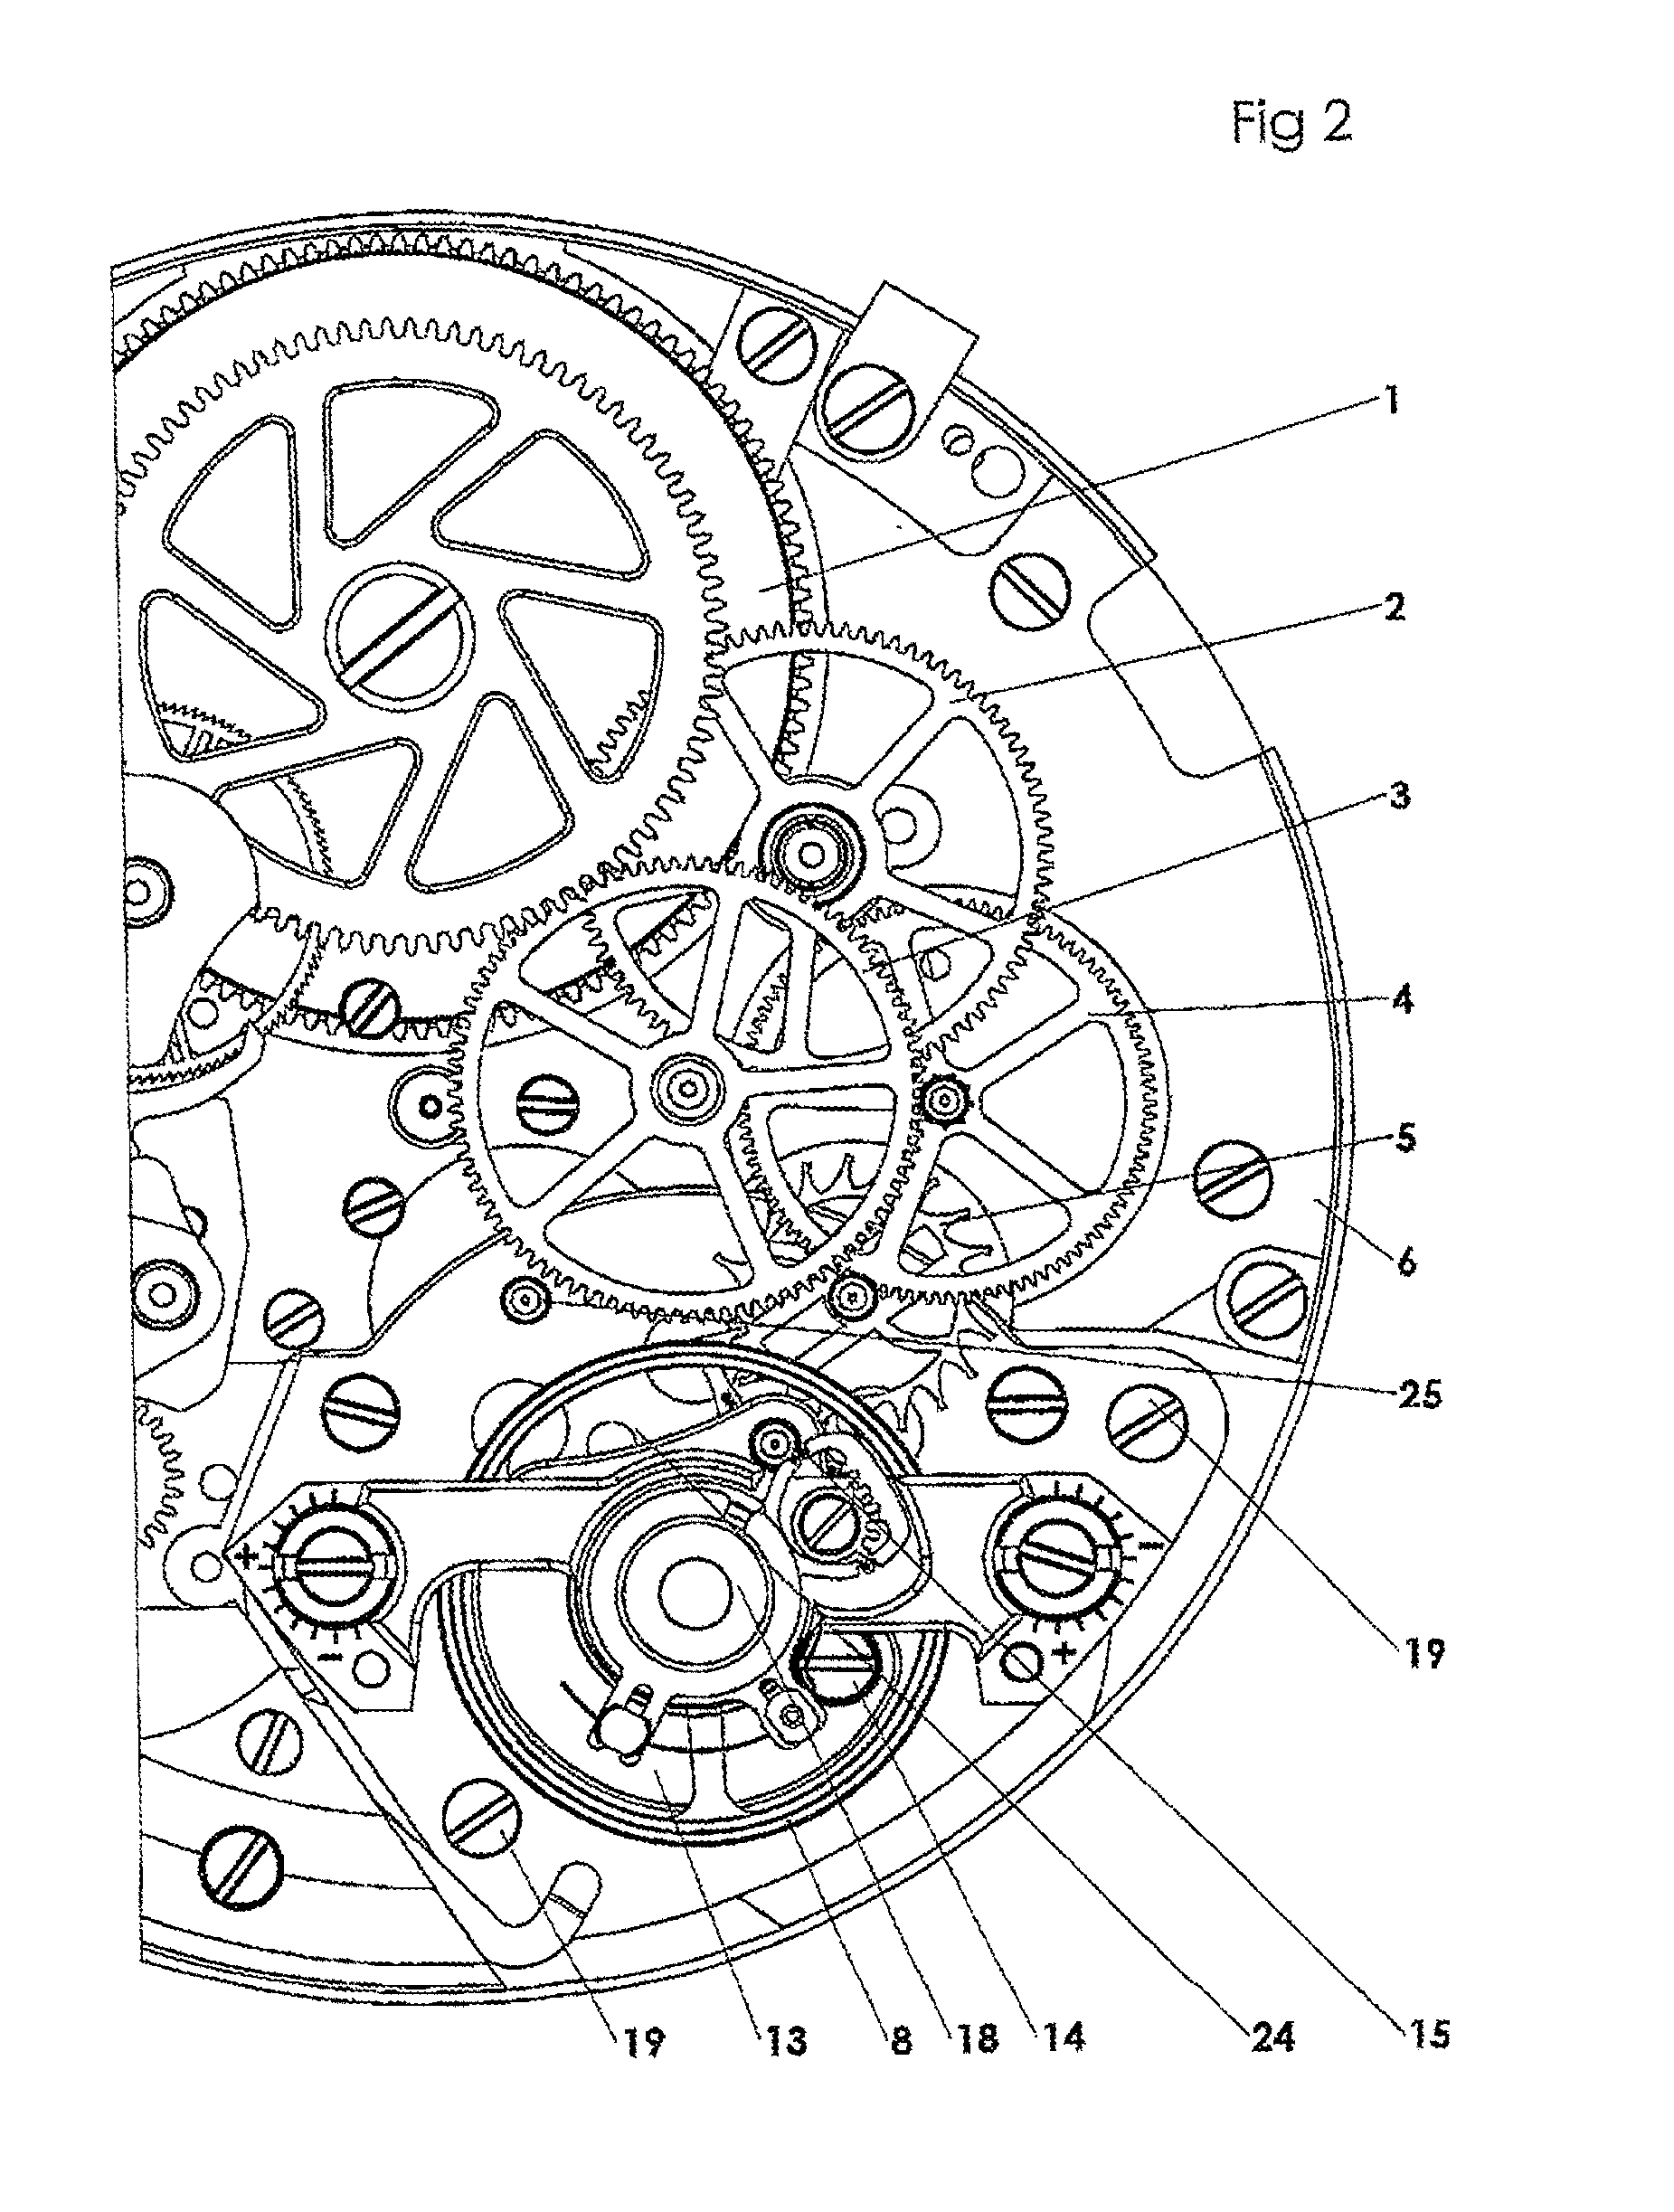 Clock Gears Mechanical Heart Drawing Sketch Coloring Page